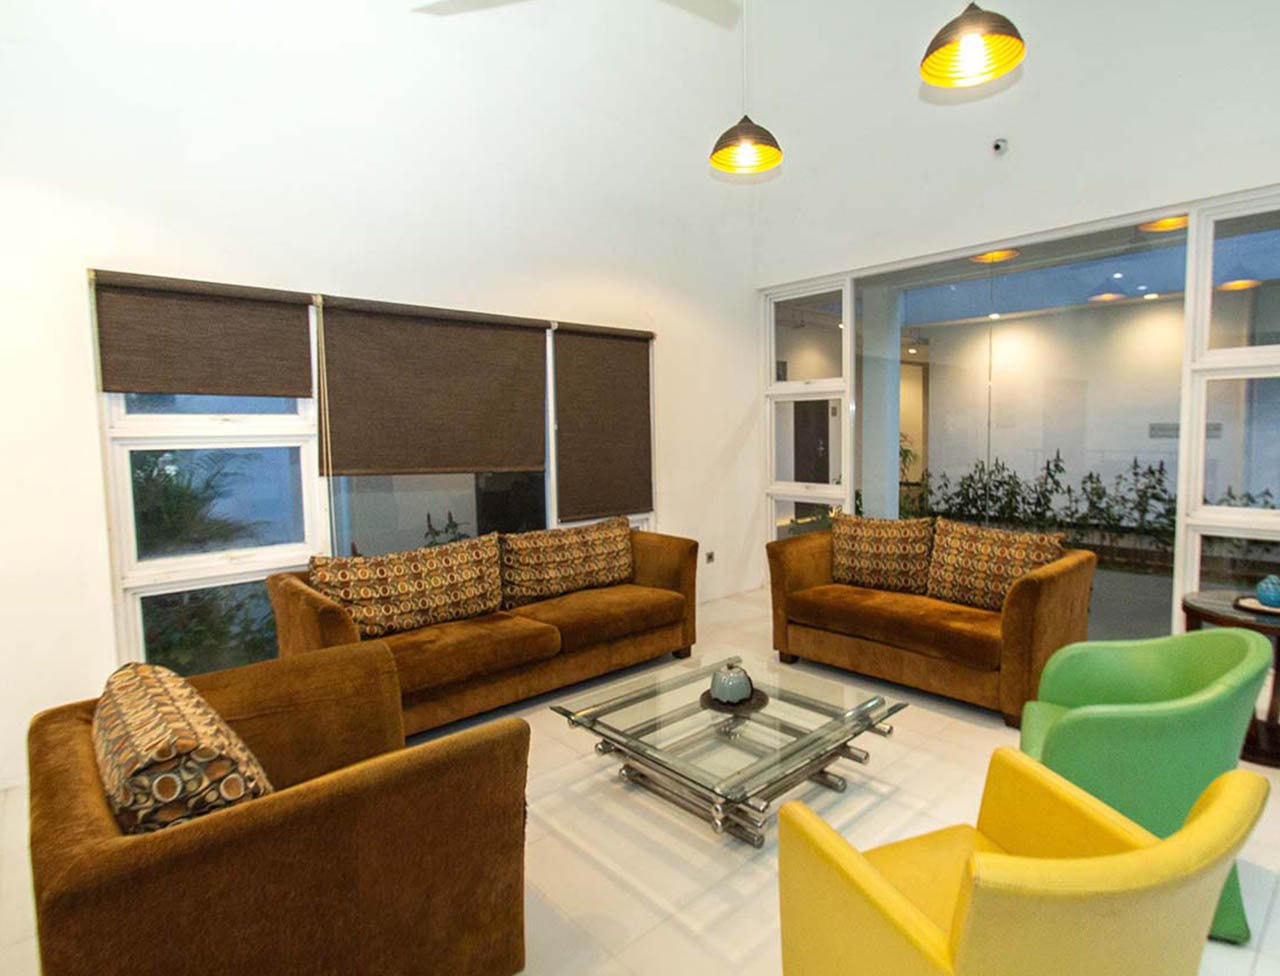 Ampera Avenue Residence's comfort and convenience